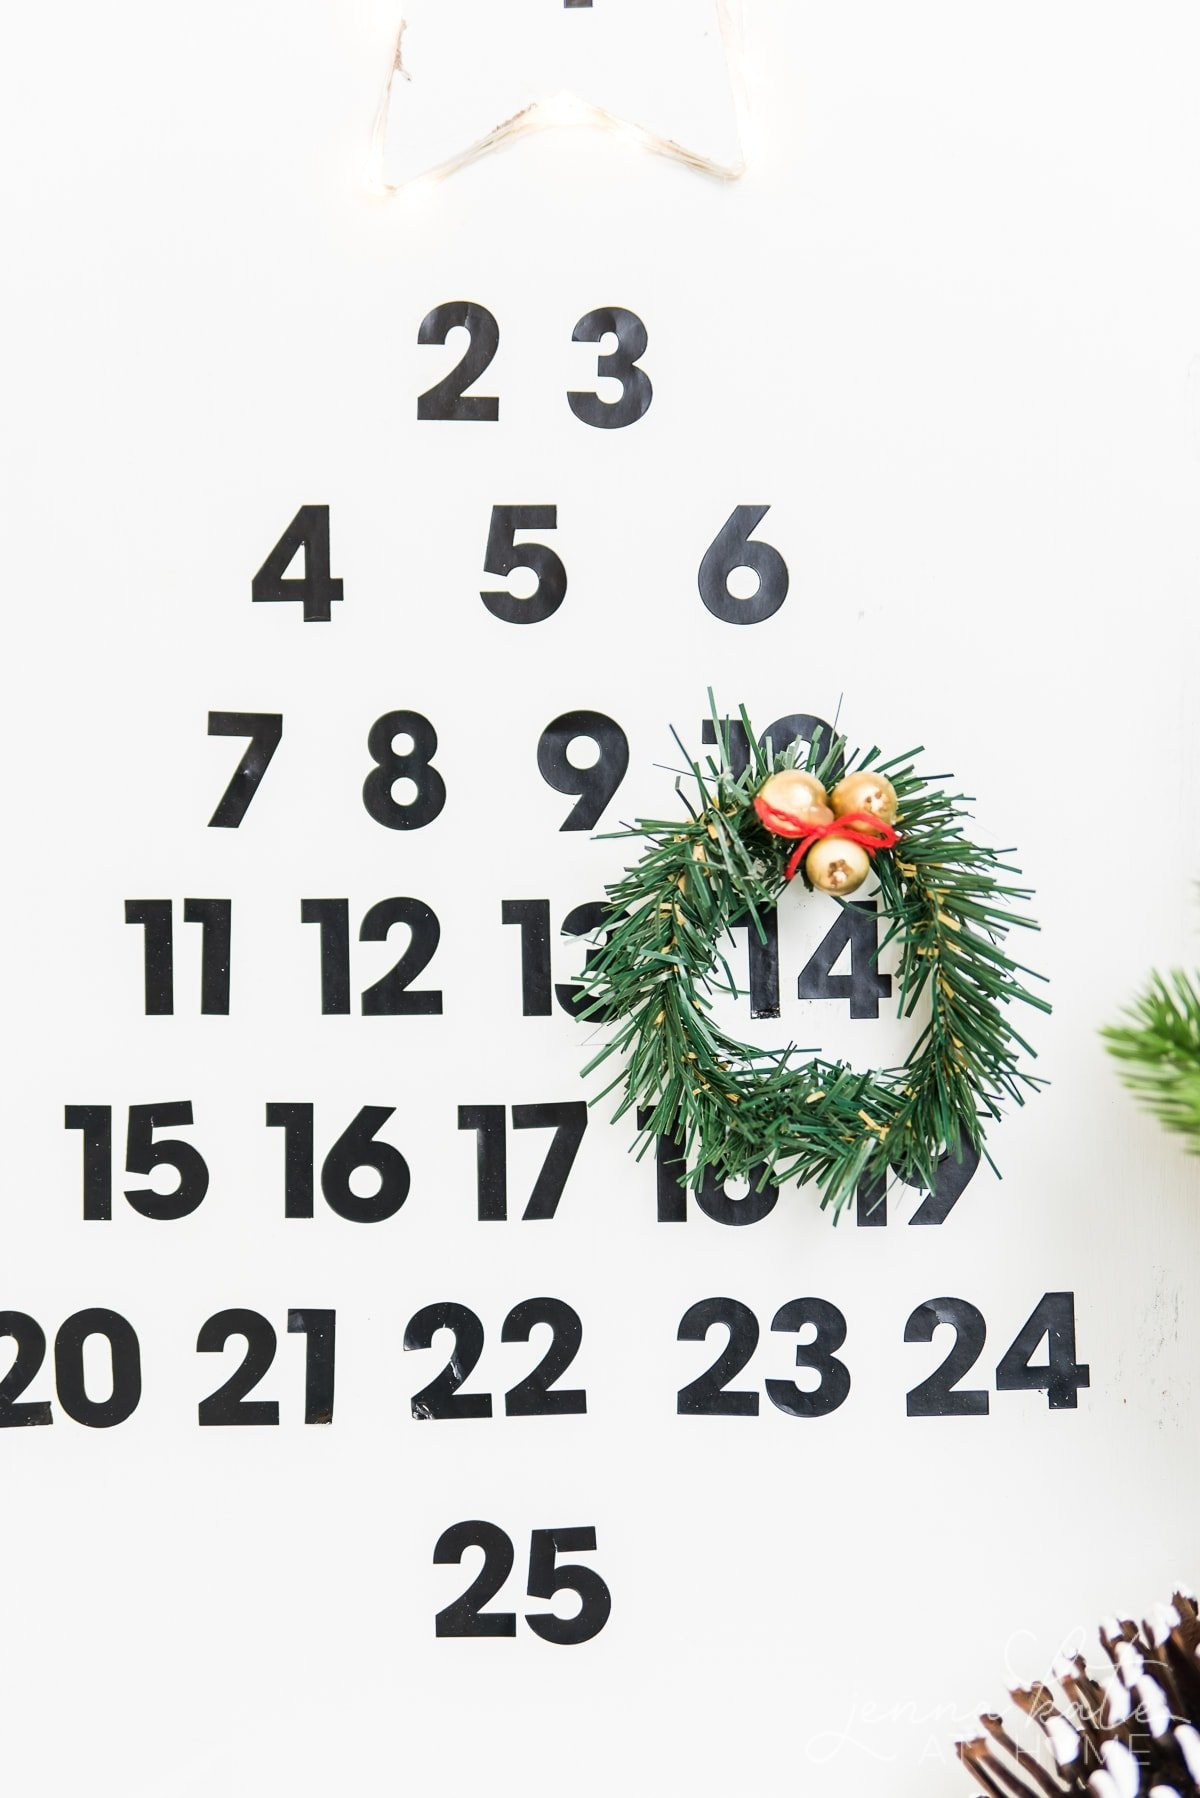 This simple DIY wooden advent calendar is such a fun project for the kids to help with